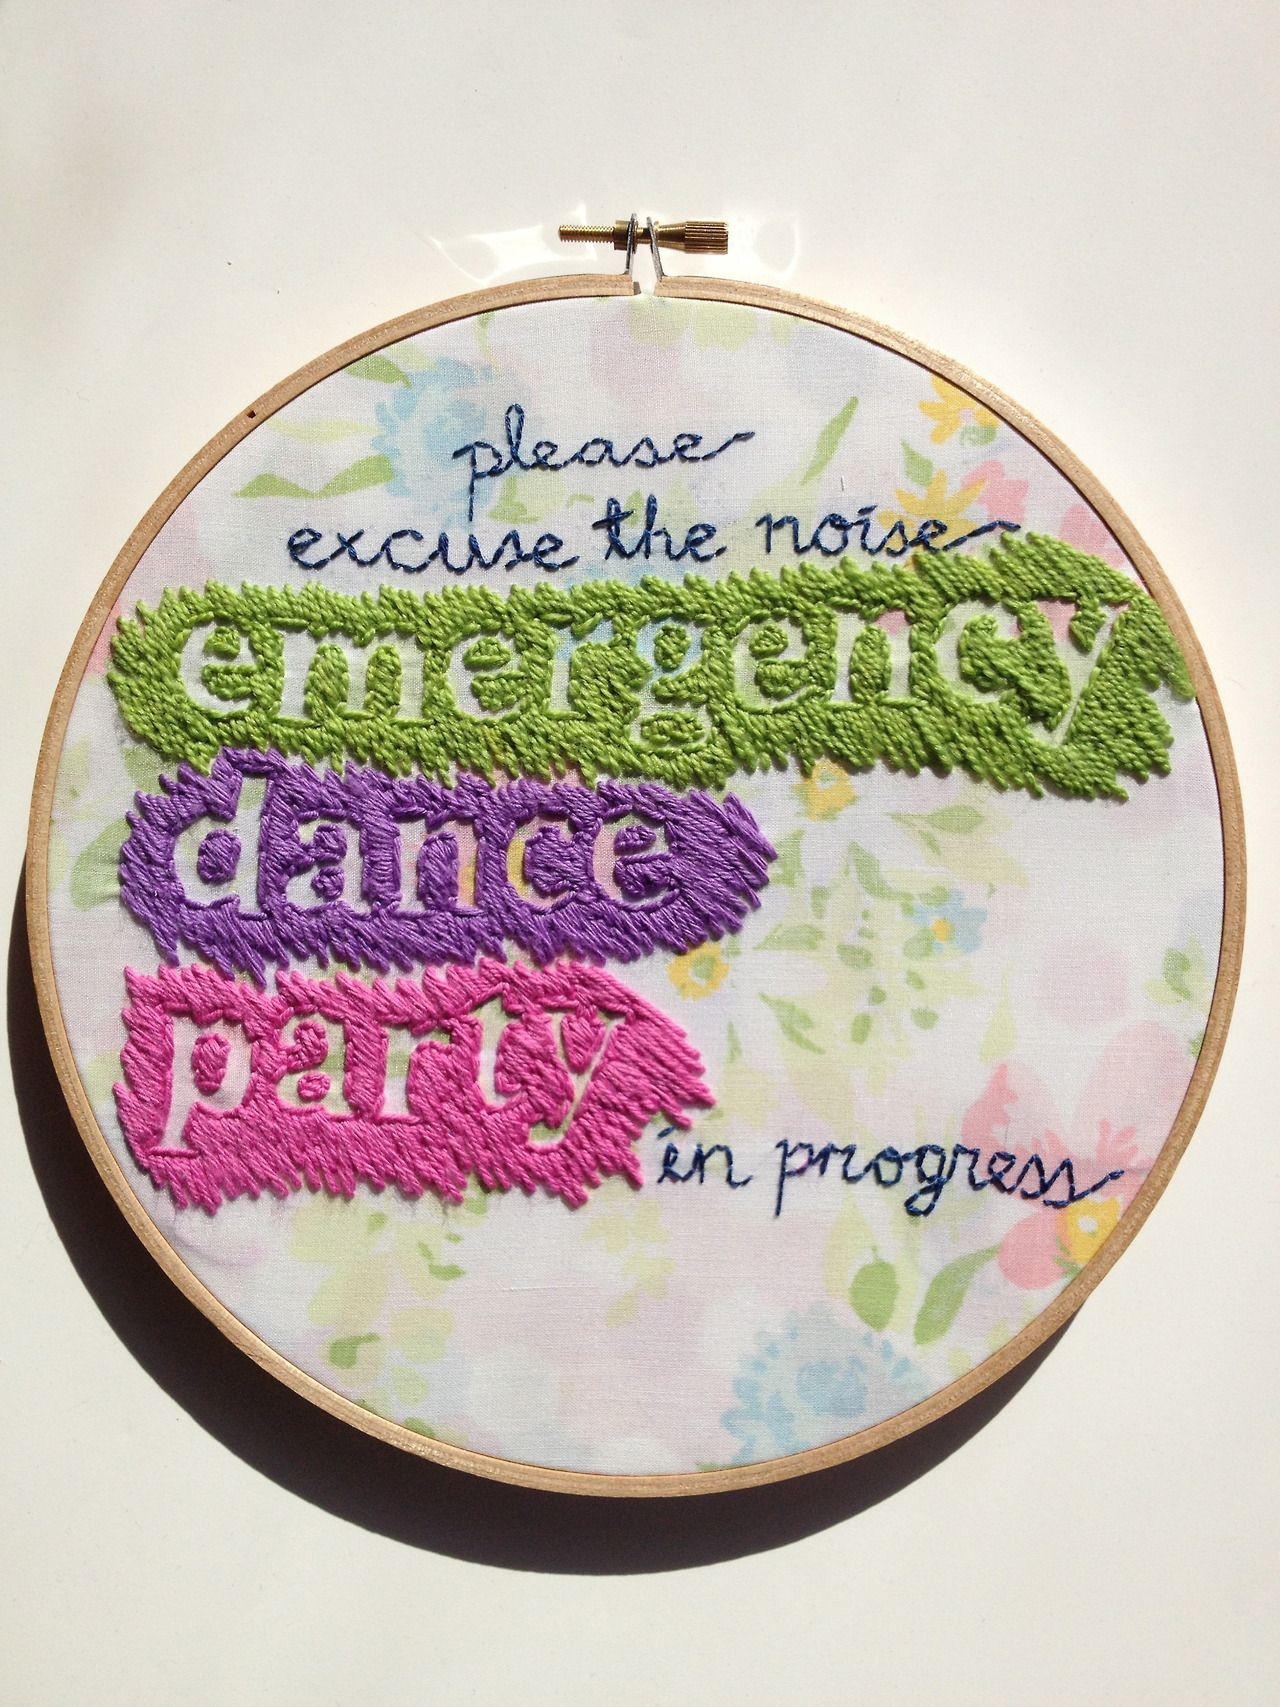 Some post pictures of crafts they've made inspired by the book like this from yadykates